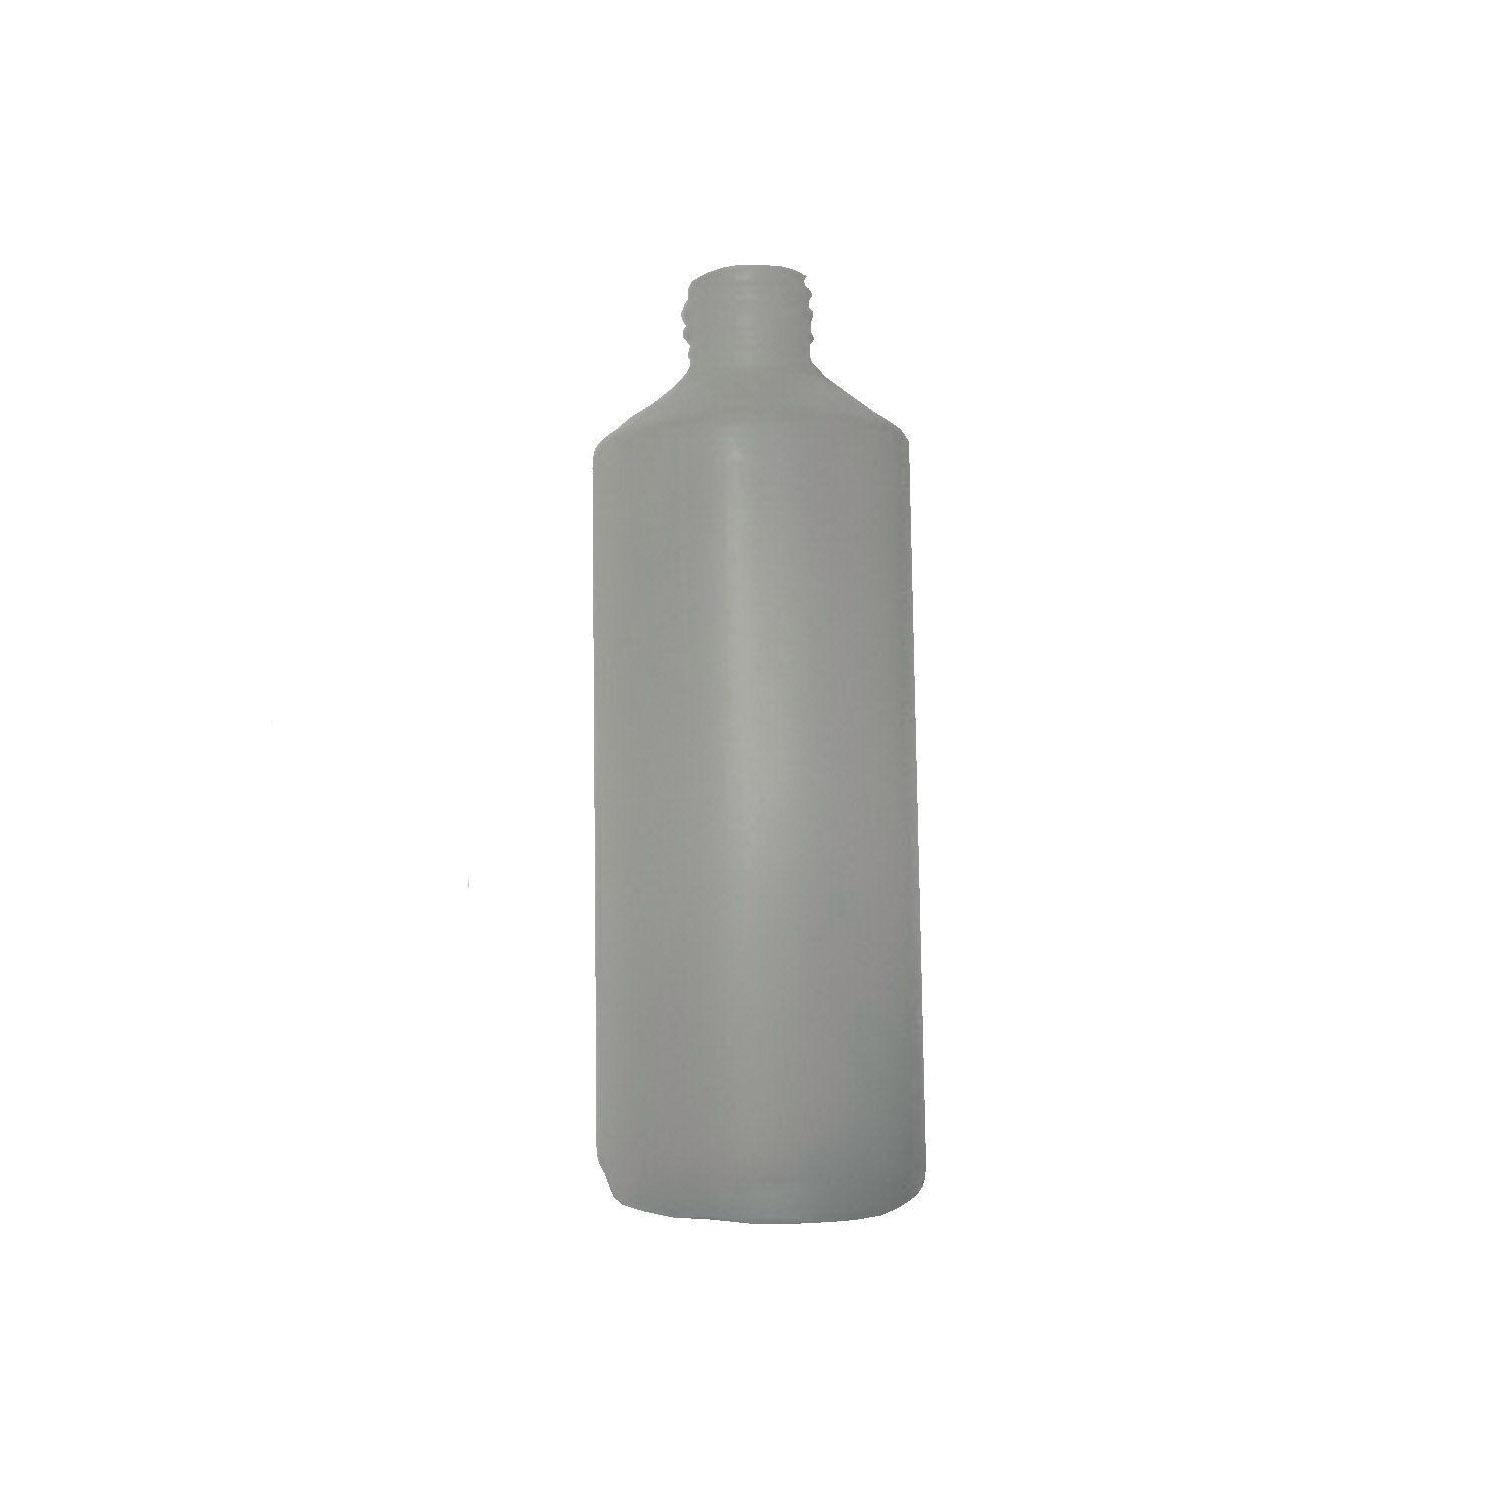 American Standard 060163-0070A Bottle, For Use With Model 4503.115 Liquid Soap Dispenser, Plastic, Off-White